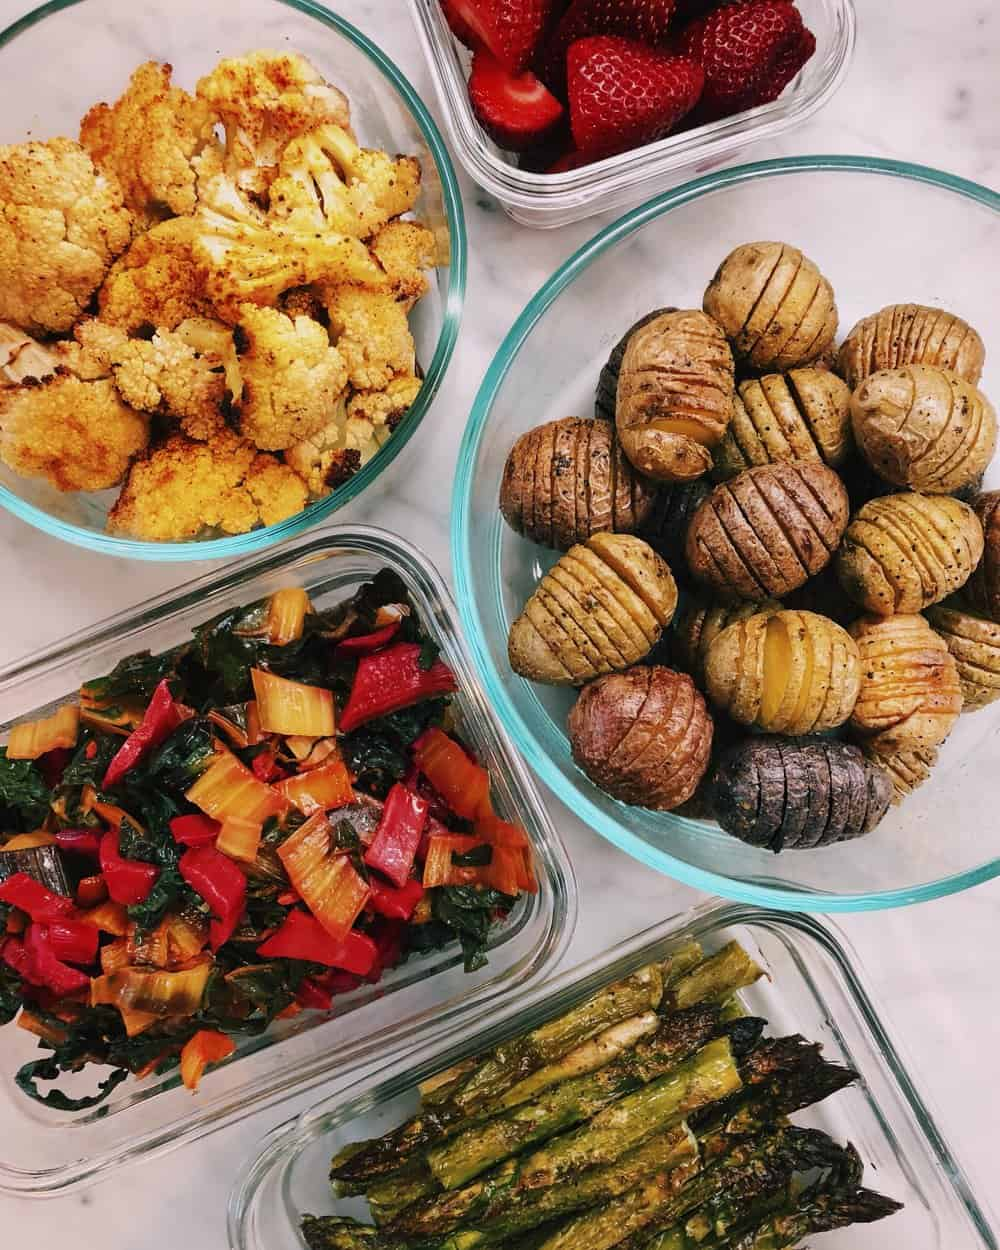 MEAL PREP: THE KALEJUNKIE DISH - There are people in the world who LOVE meal prep, and they can't go even Sunday without preparing a lavish spread of meals to last the week. For me, I hate it. There—I said it. I don't enjoy cooking a week's worth of food in advance, for so many reasons.